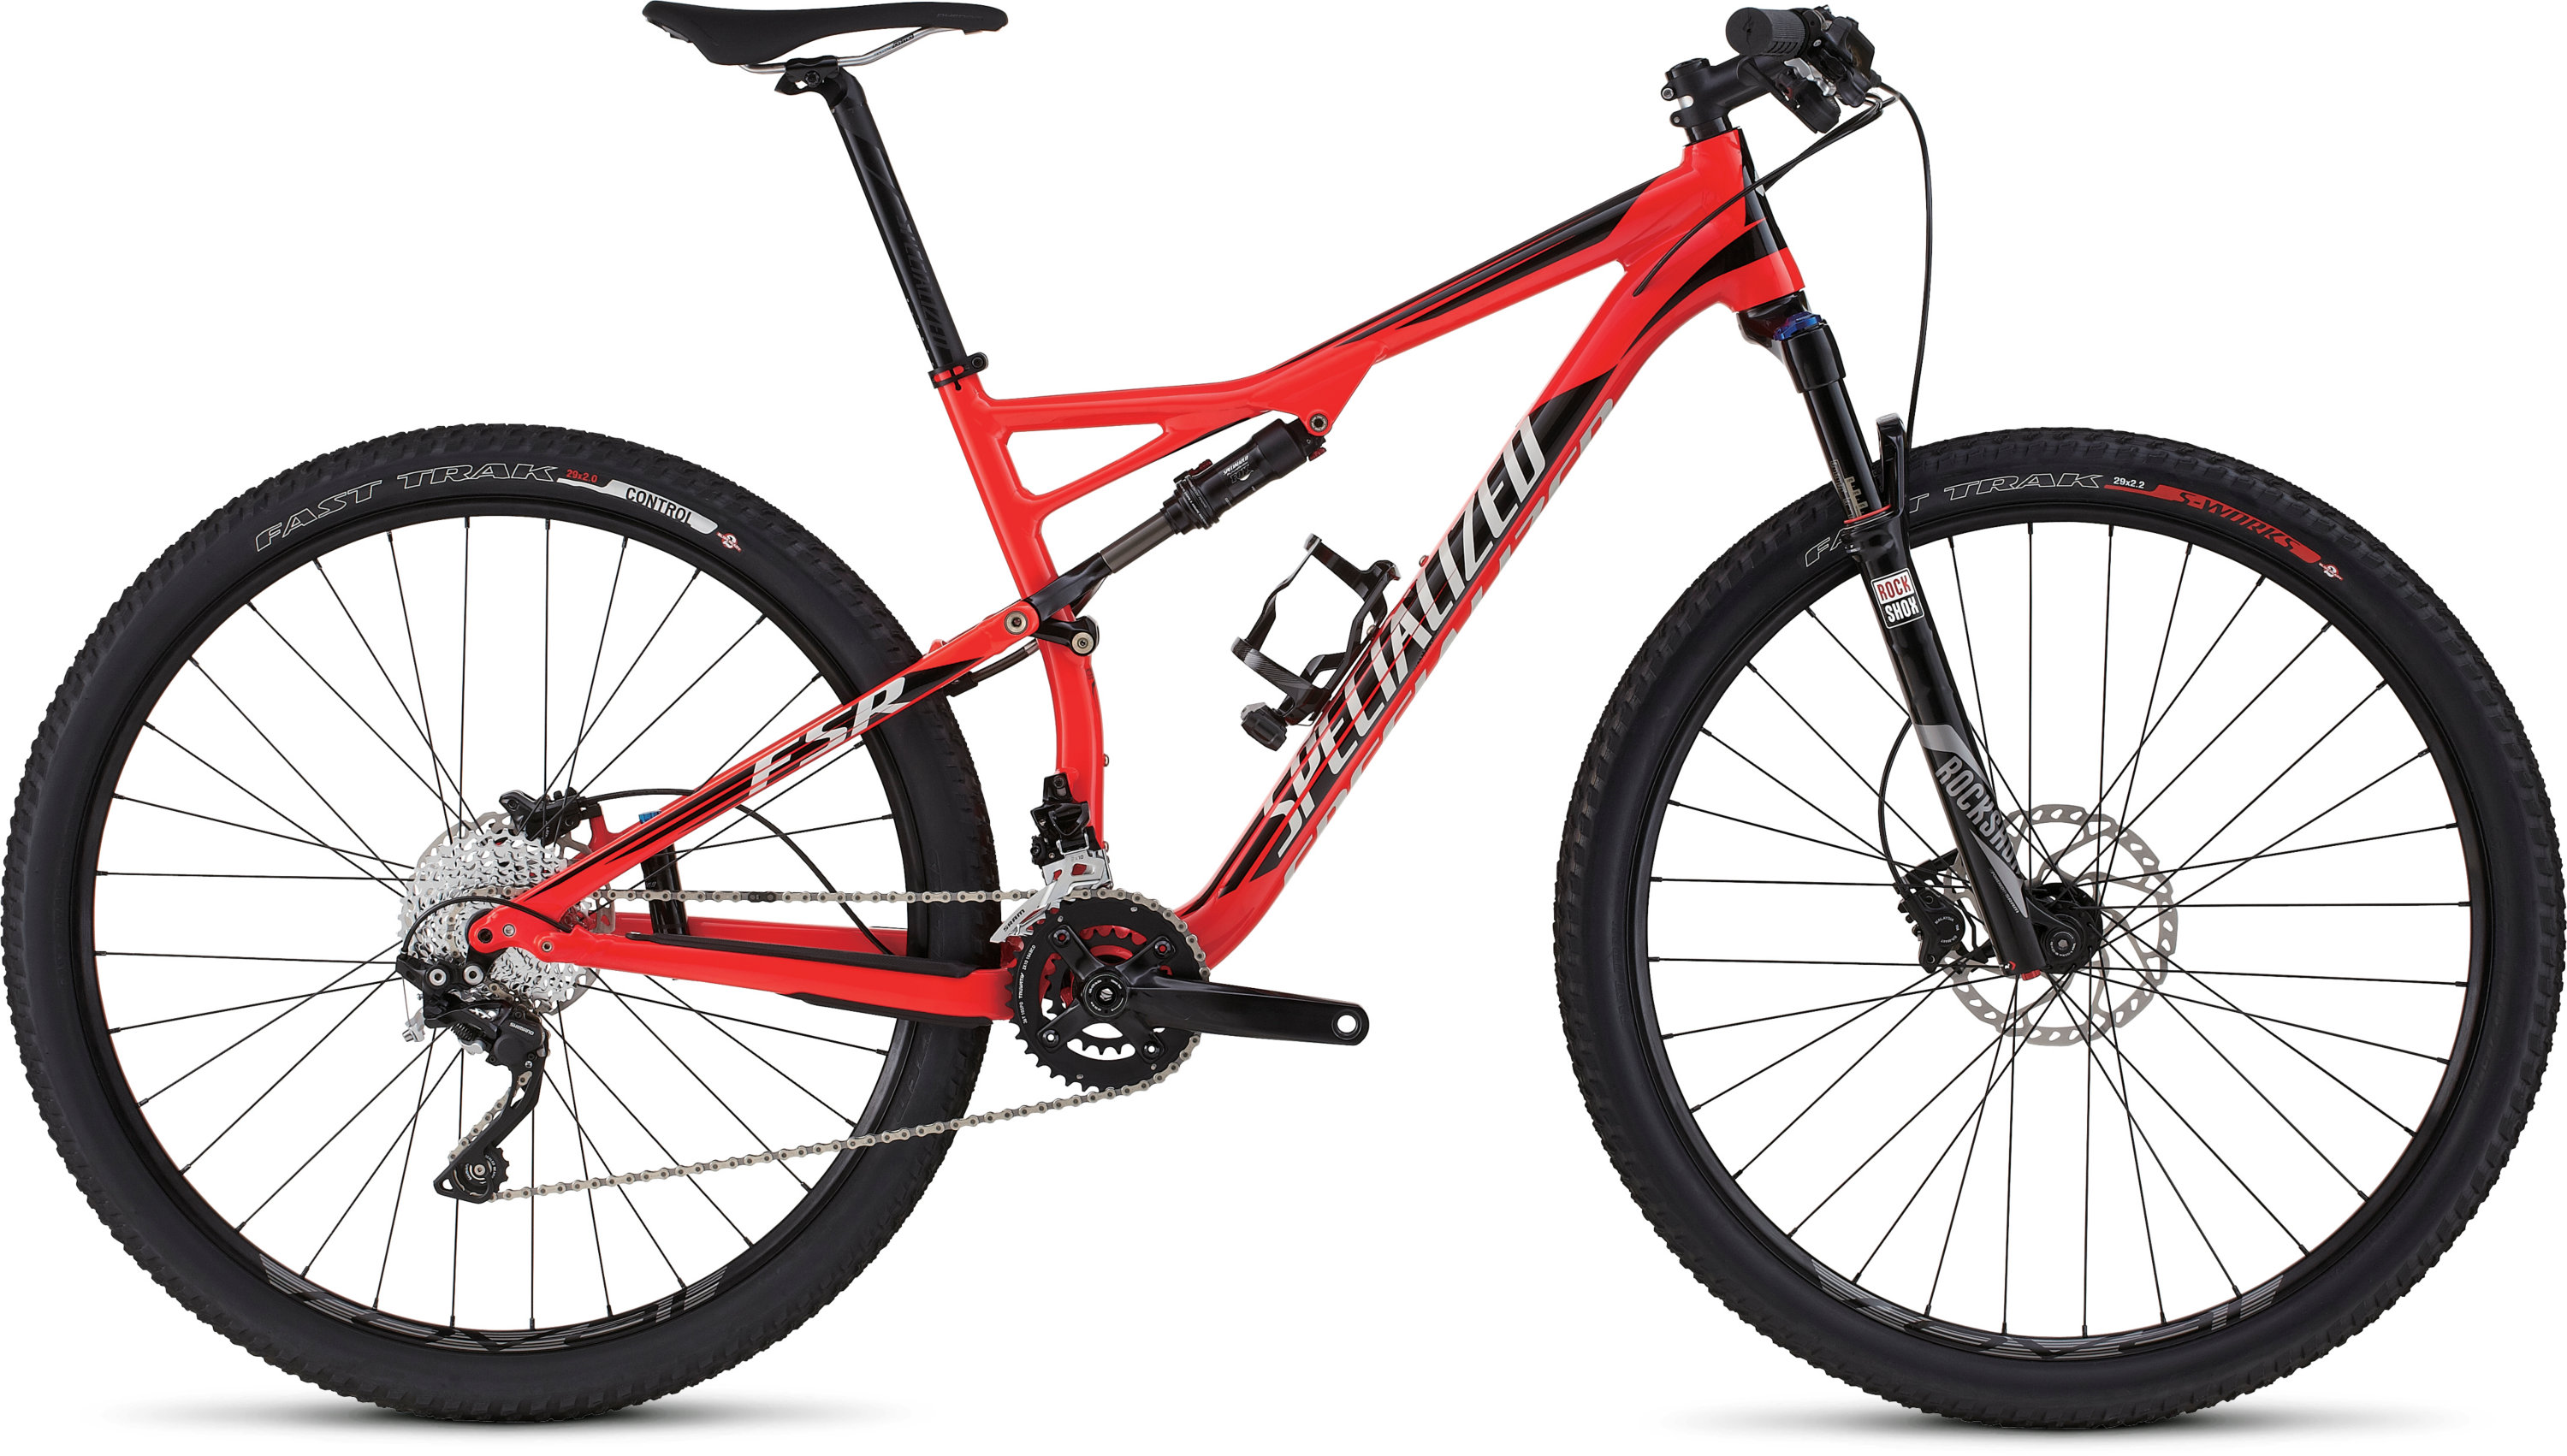 SPECIALIZED EPIC FSR COMP 29 RKTRED/BLK/DRTYWHT XL - SPECIALIZED EPIC FSR COMP 29 RKTRED/BLK/DRTYWHT XL